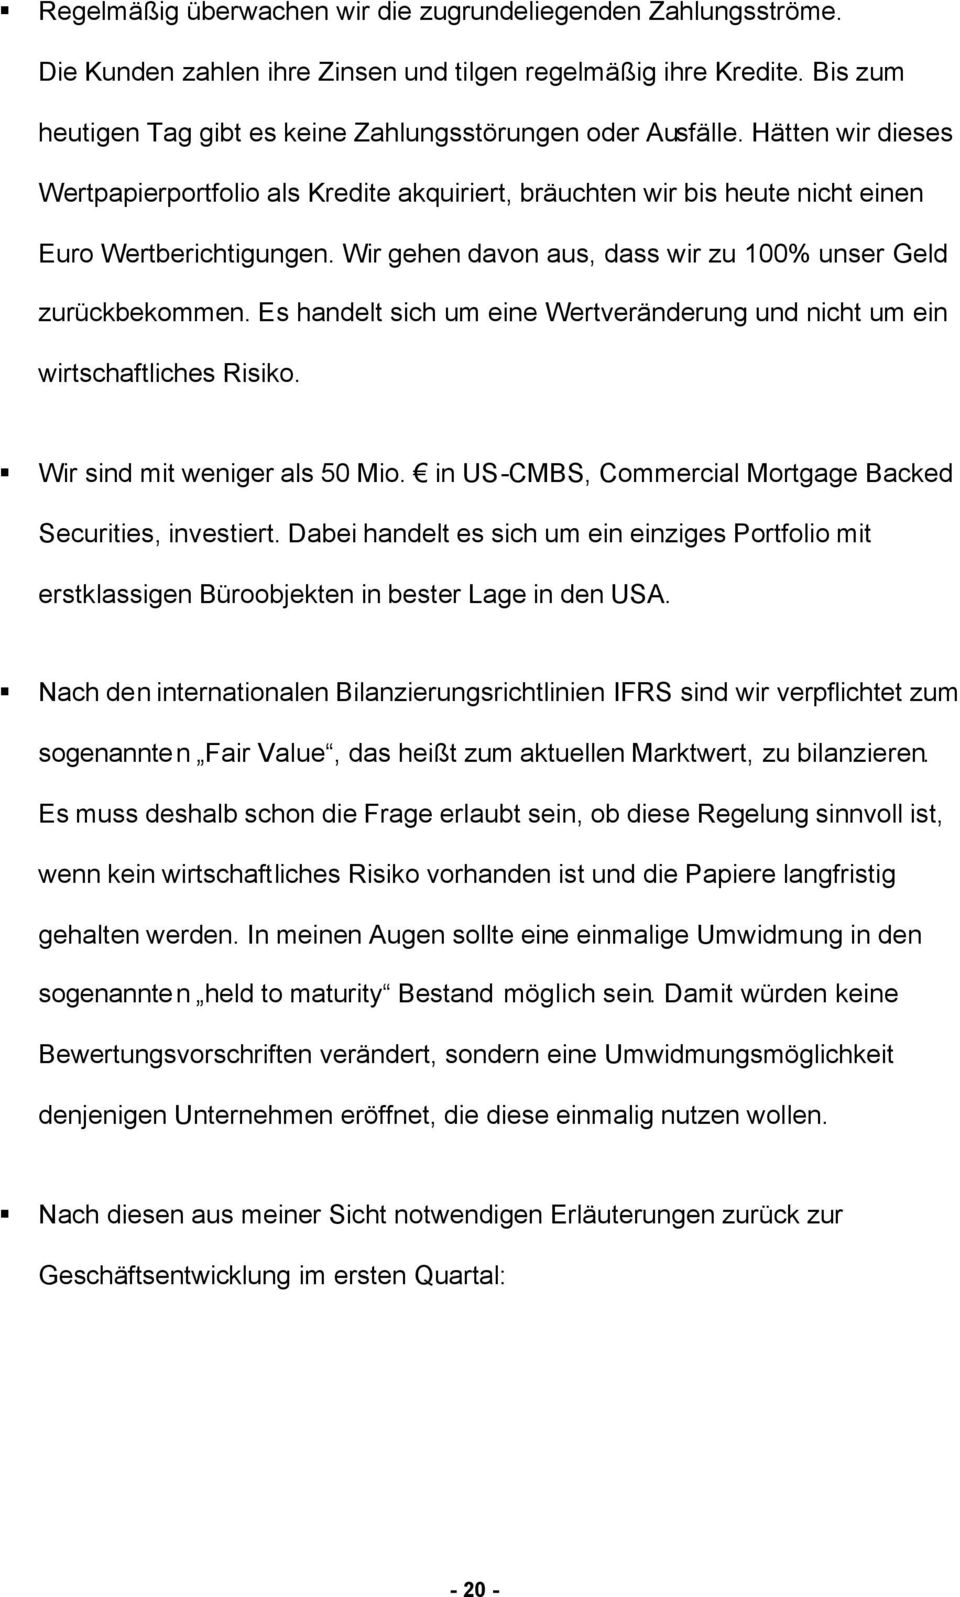 Es handelt sich um eine Wertveränderung und nicht um ein wirtschaftliches Risiko. Wir sind mit weniger als 50 Mio. in US-CMBS, Commercial Mortgage Backed Securities, investiert.